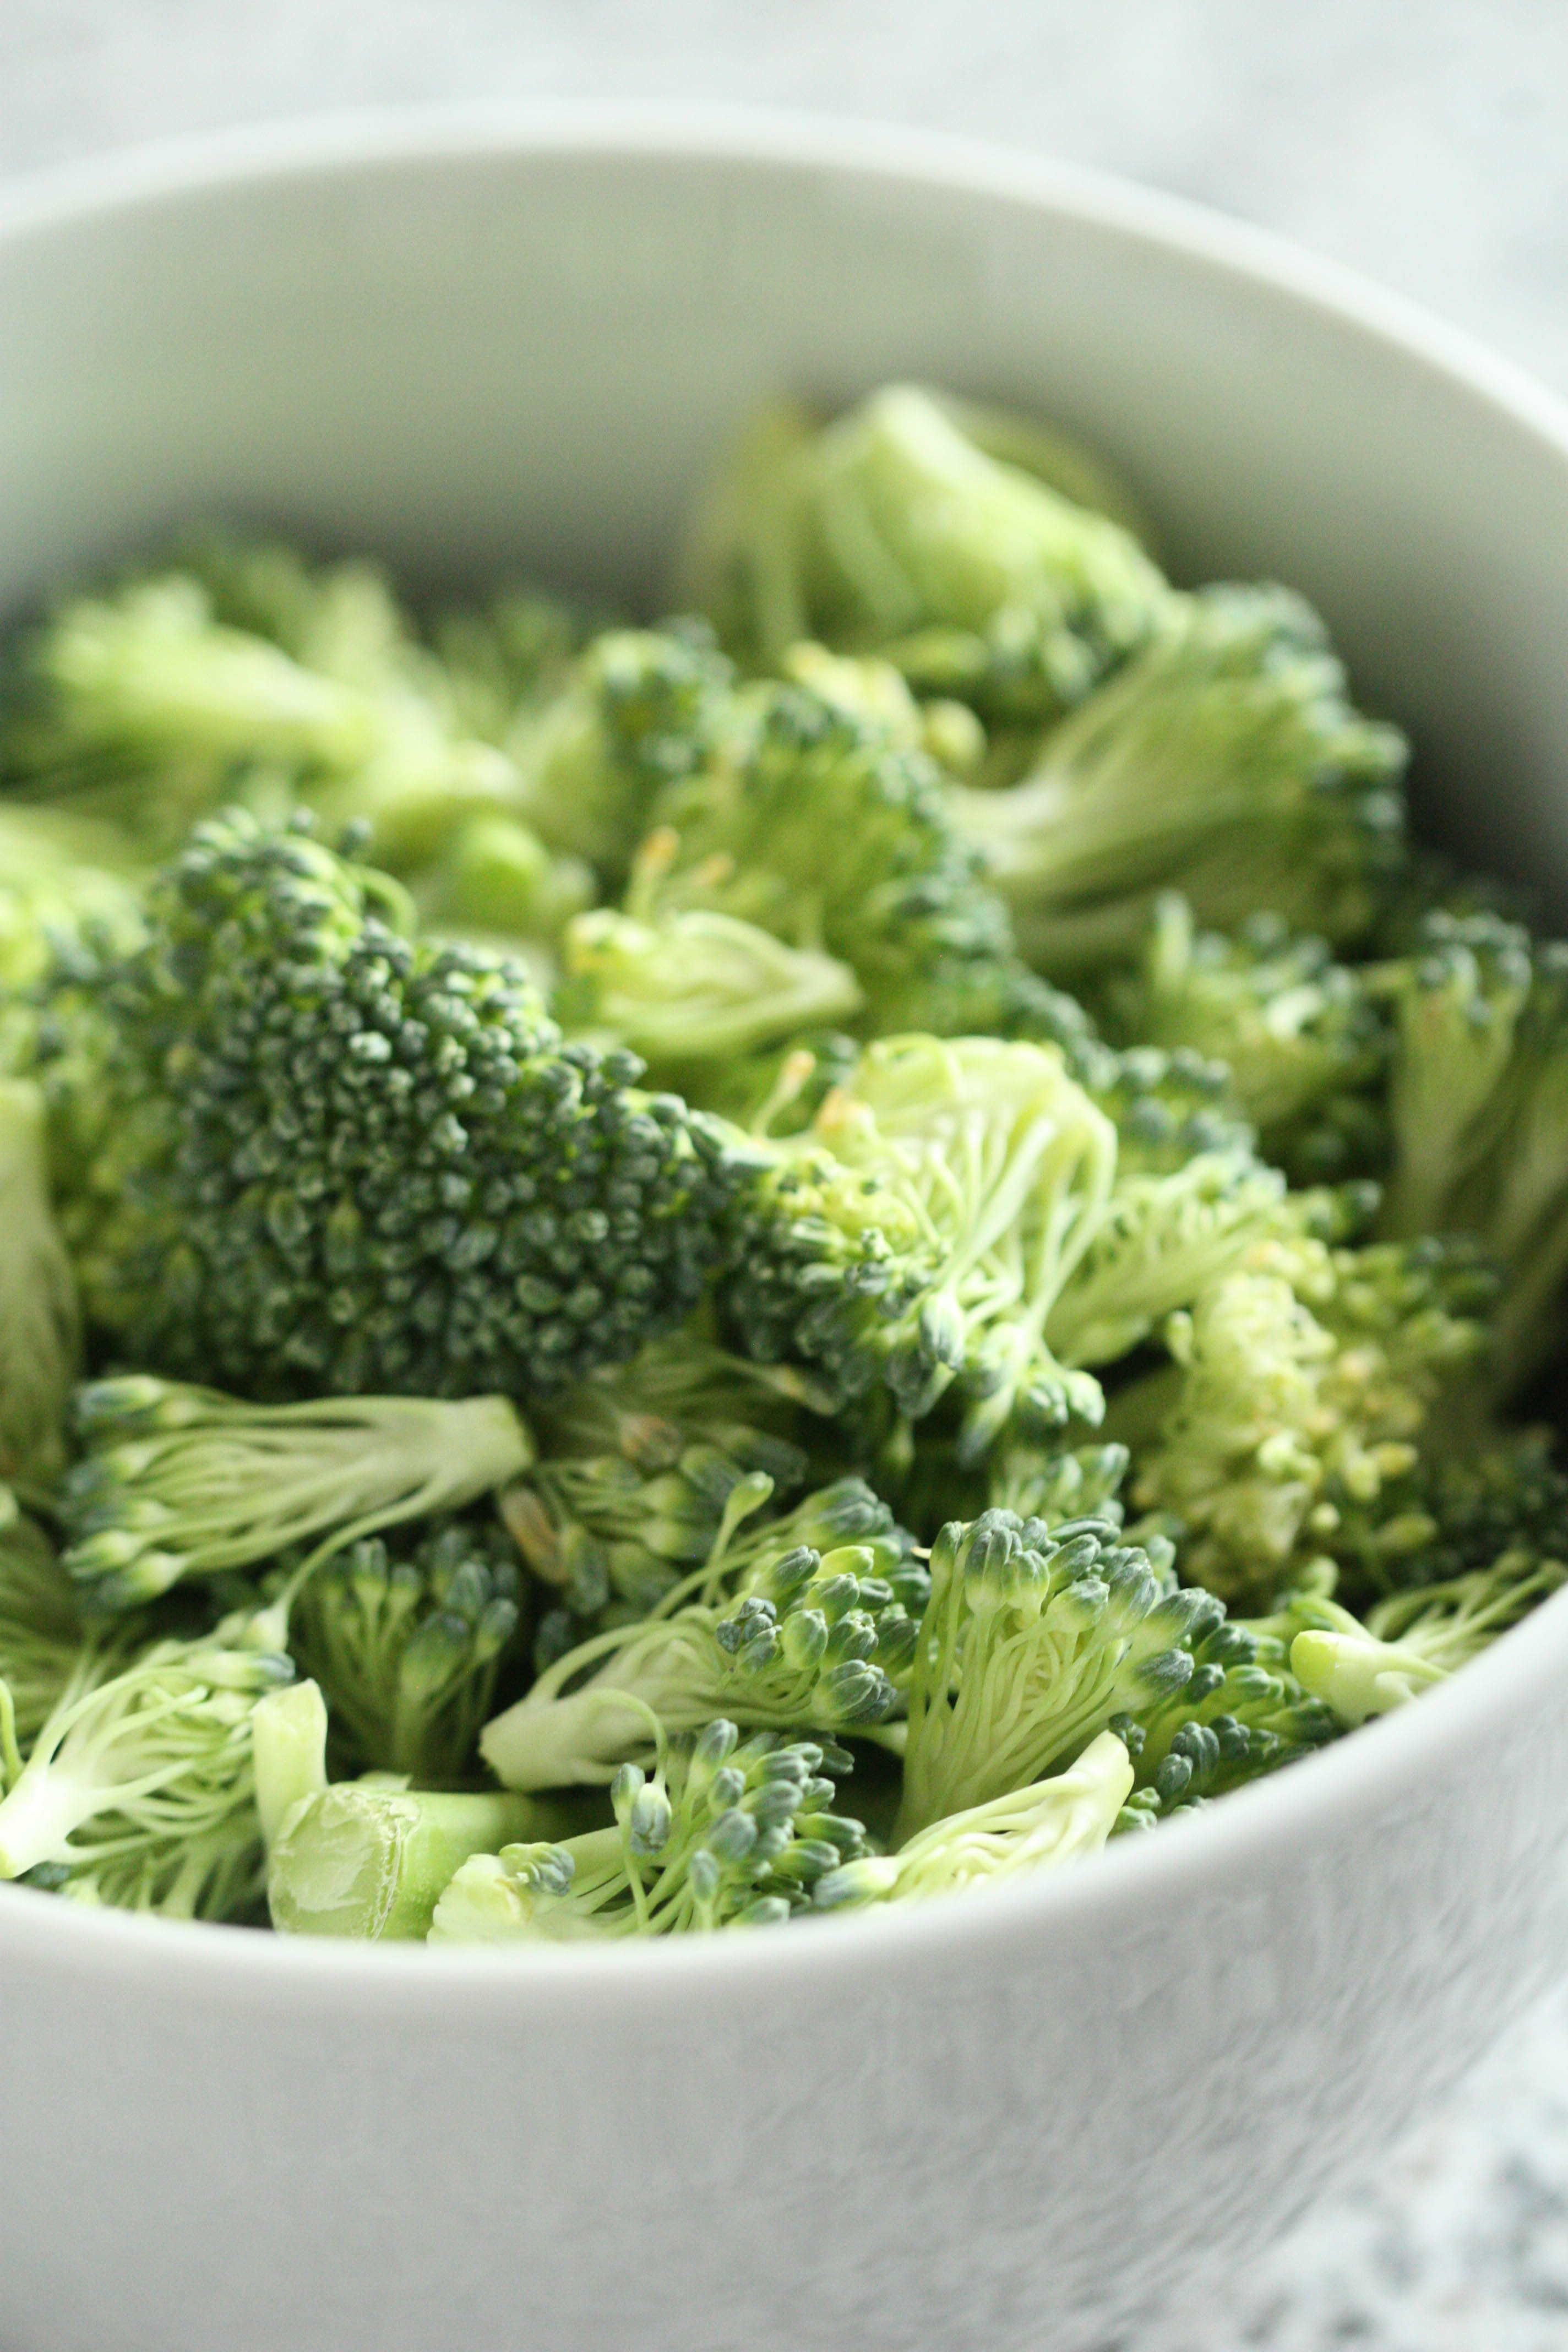 freshly chopped, uncooked broccoli that will be steamed separately